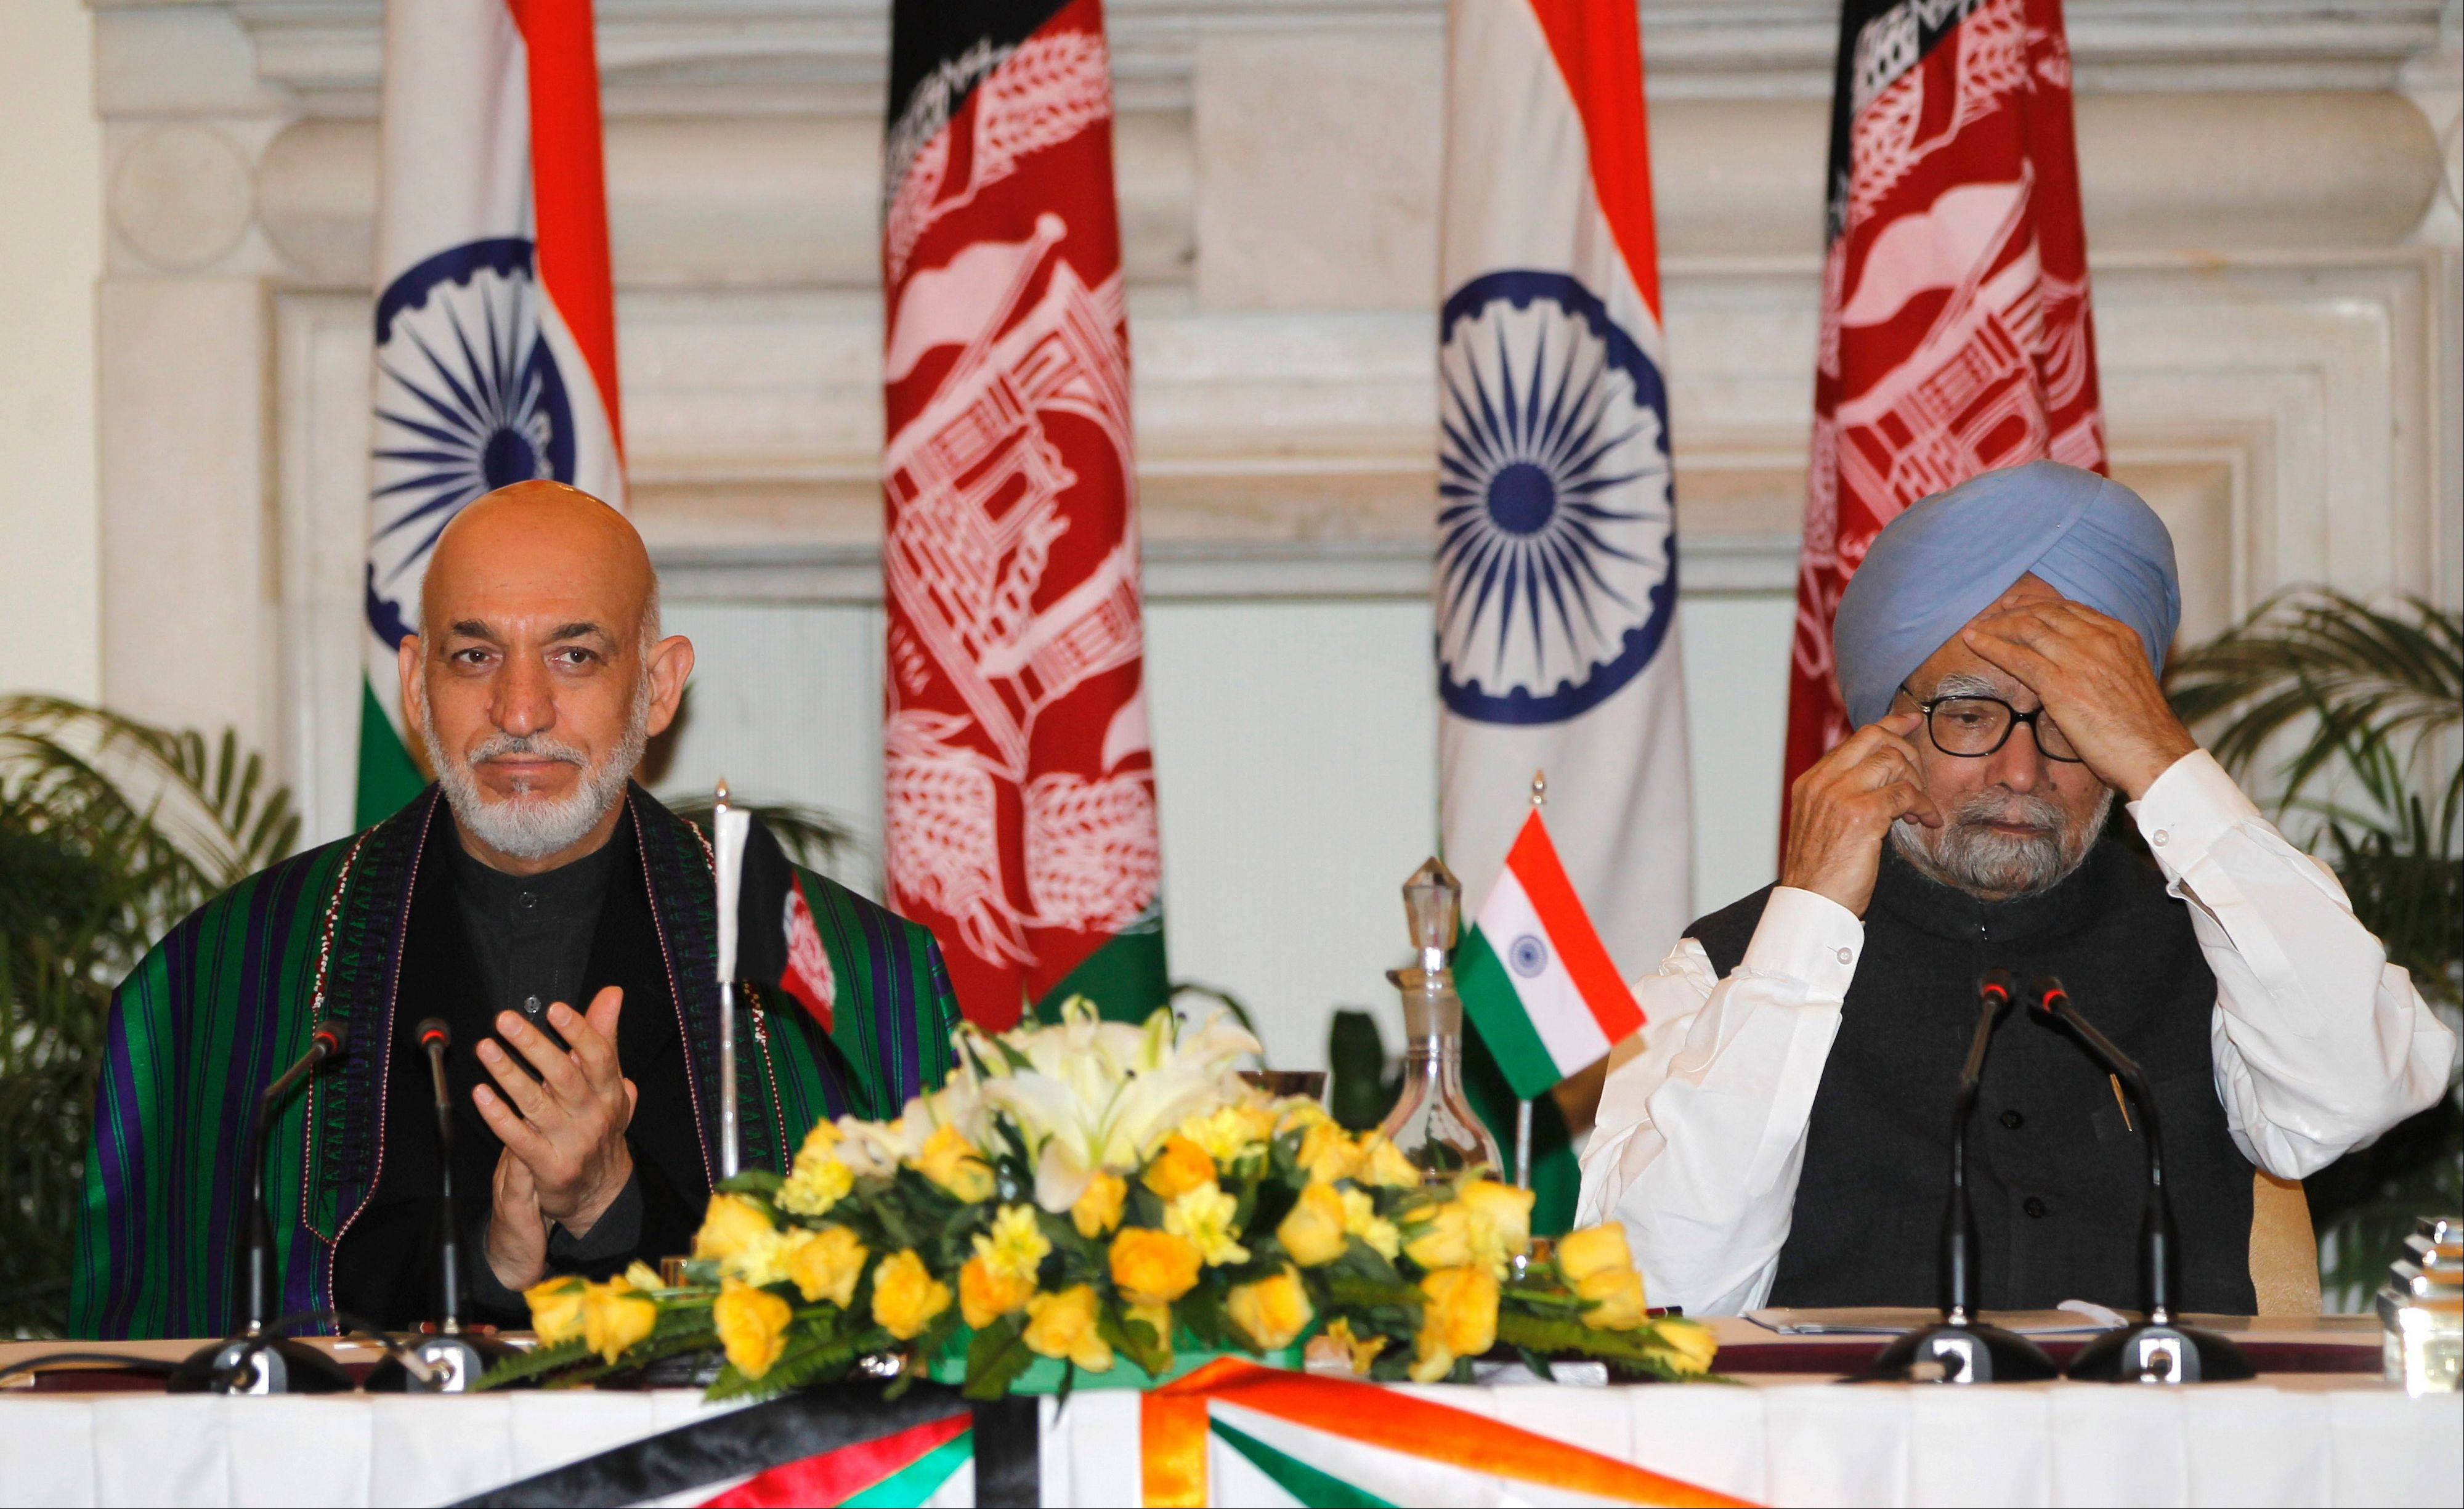 Afghanistan�s President Hamid Karzai, left, and Indian Prime Minister Manmohan Singh attend a ceremony of the signing of agreements between the two countries in New Delhi, India, Monday, Nov. 12, 2012. Karzai was meeting with Indian leaders Monday in a bid to woo investment to his war-torn country and boost security before a planned drawdown of NATO troops in 2014.